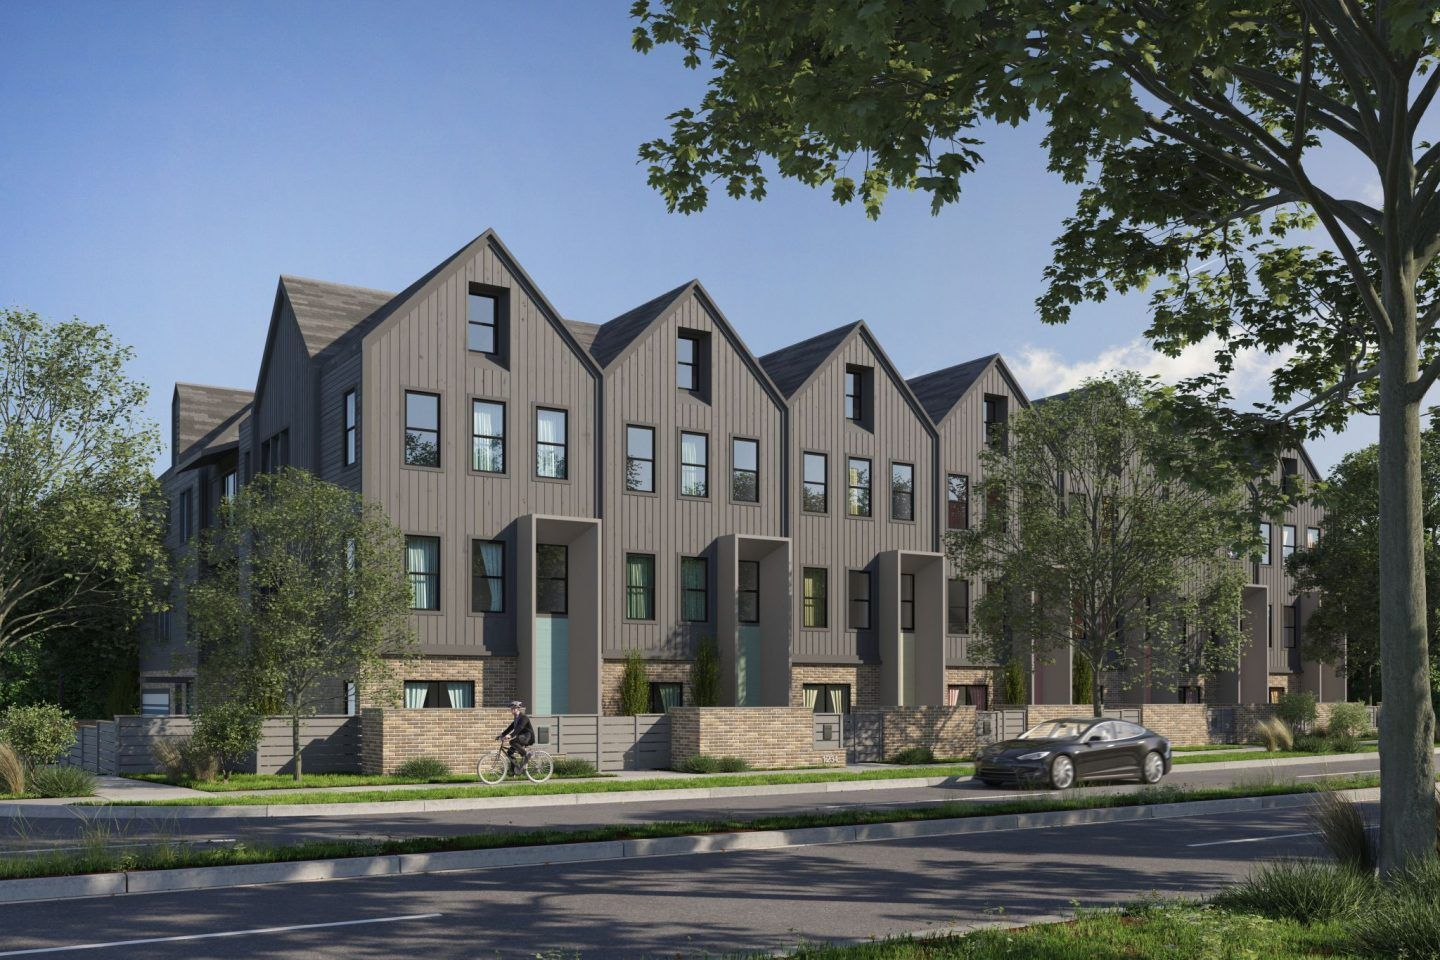 Plaza Row Townhomes | Modern townhouse, Townhouse ...